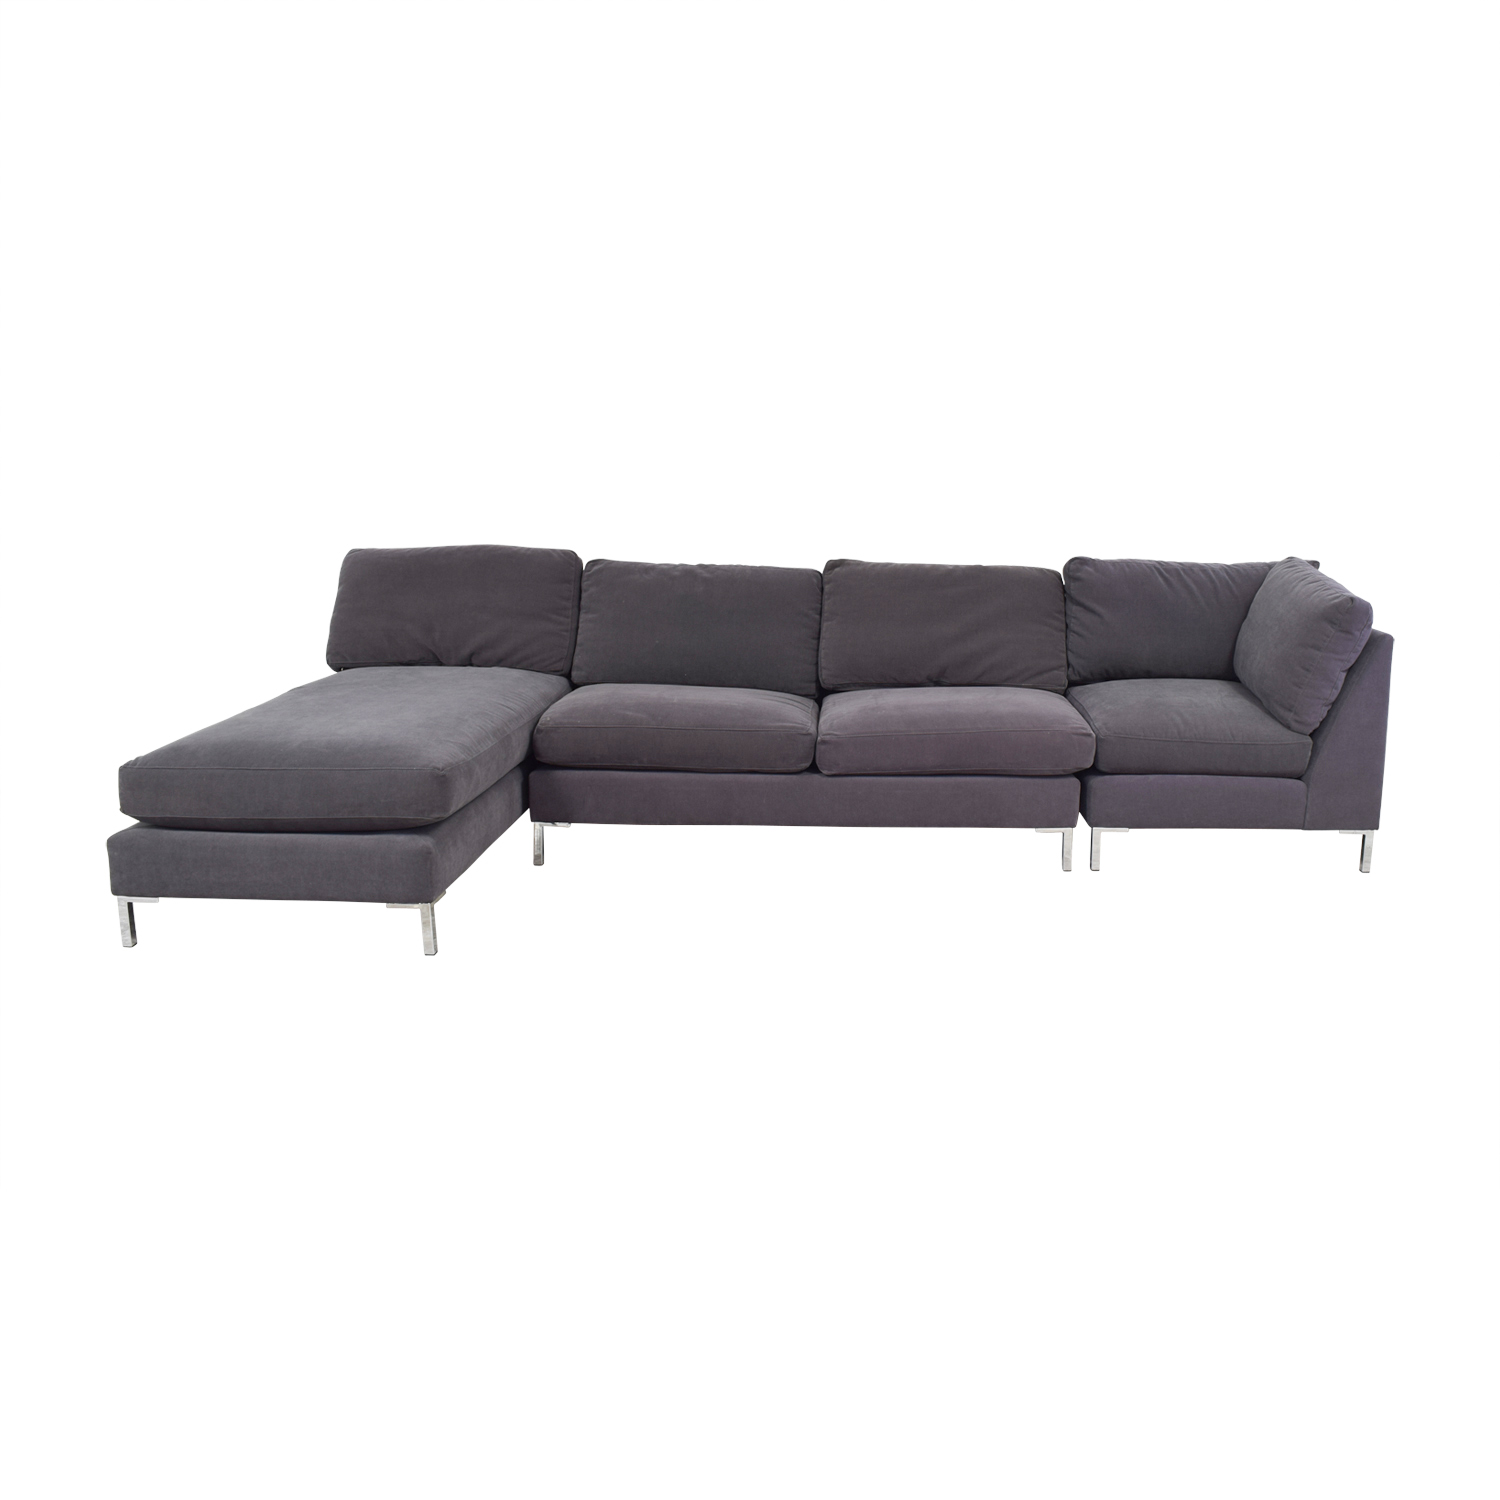 shop CB2 Charcoal Grey Chaise Sectional CB2 Sofas